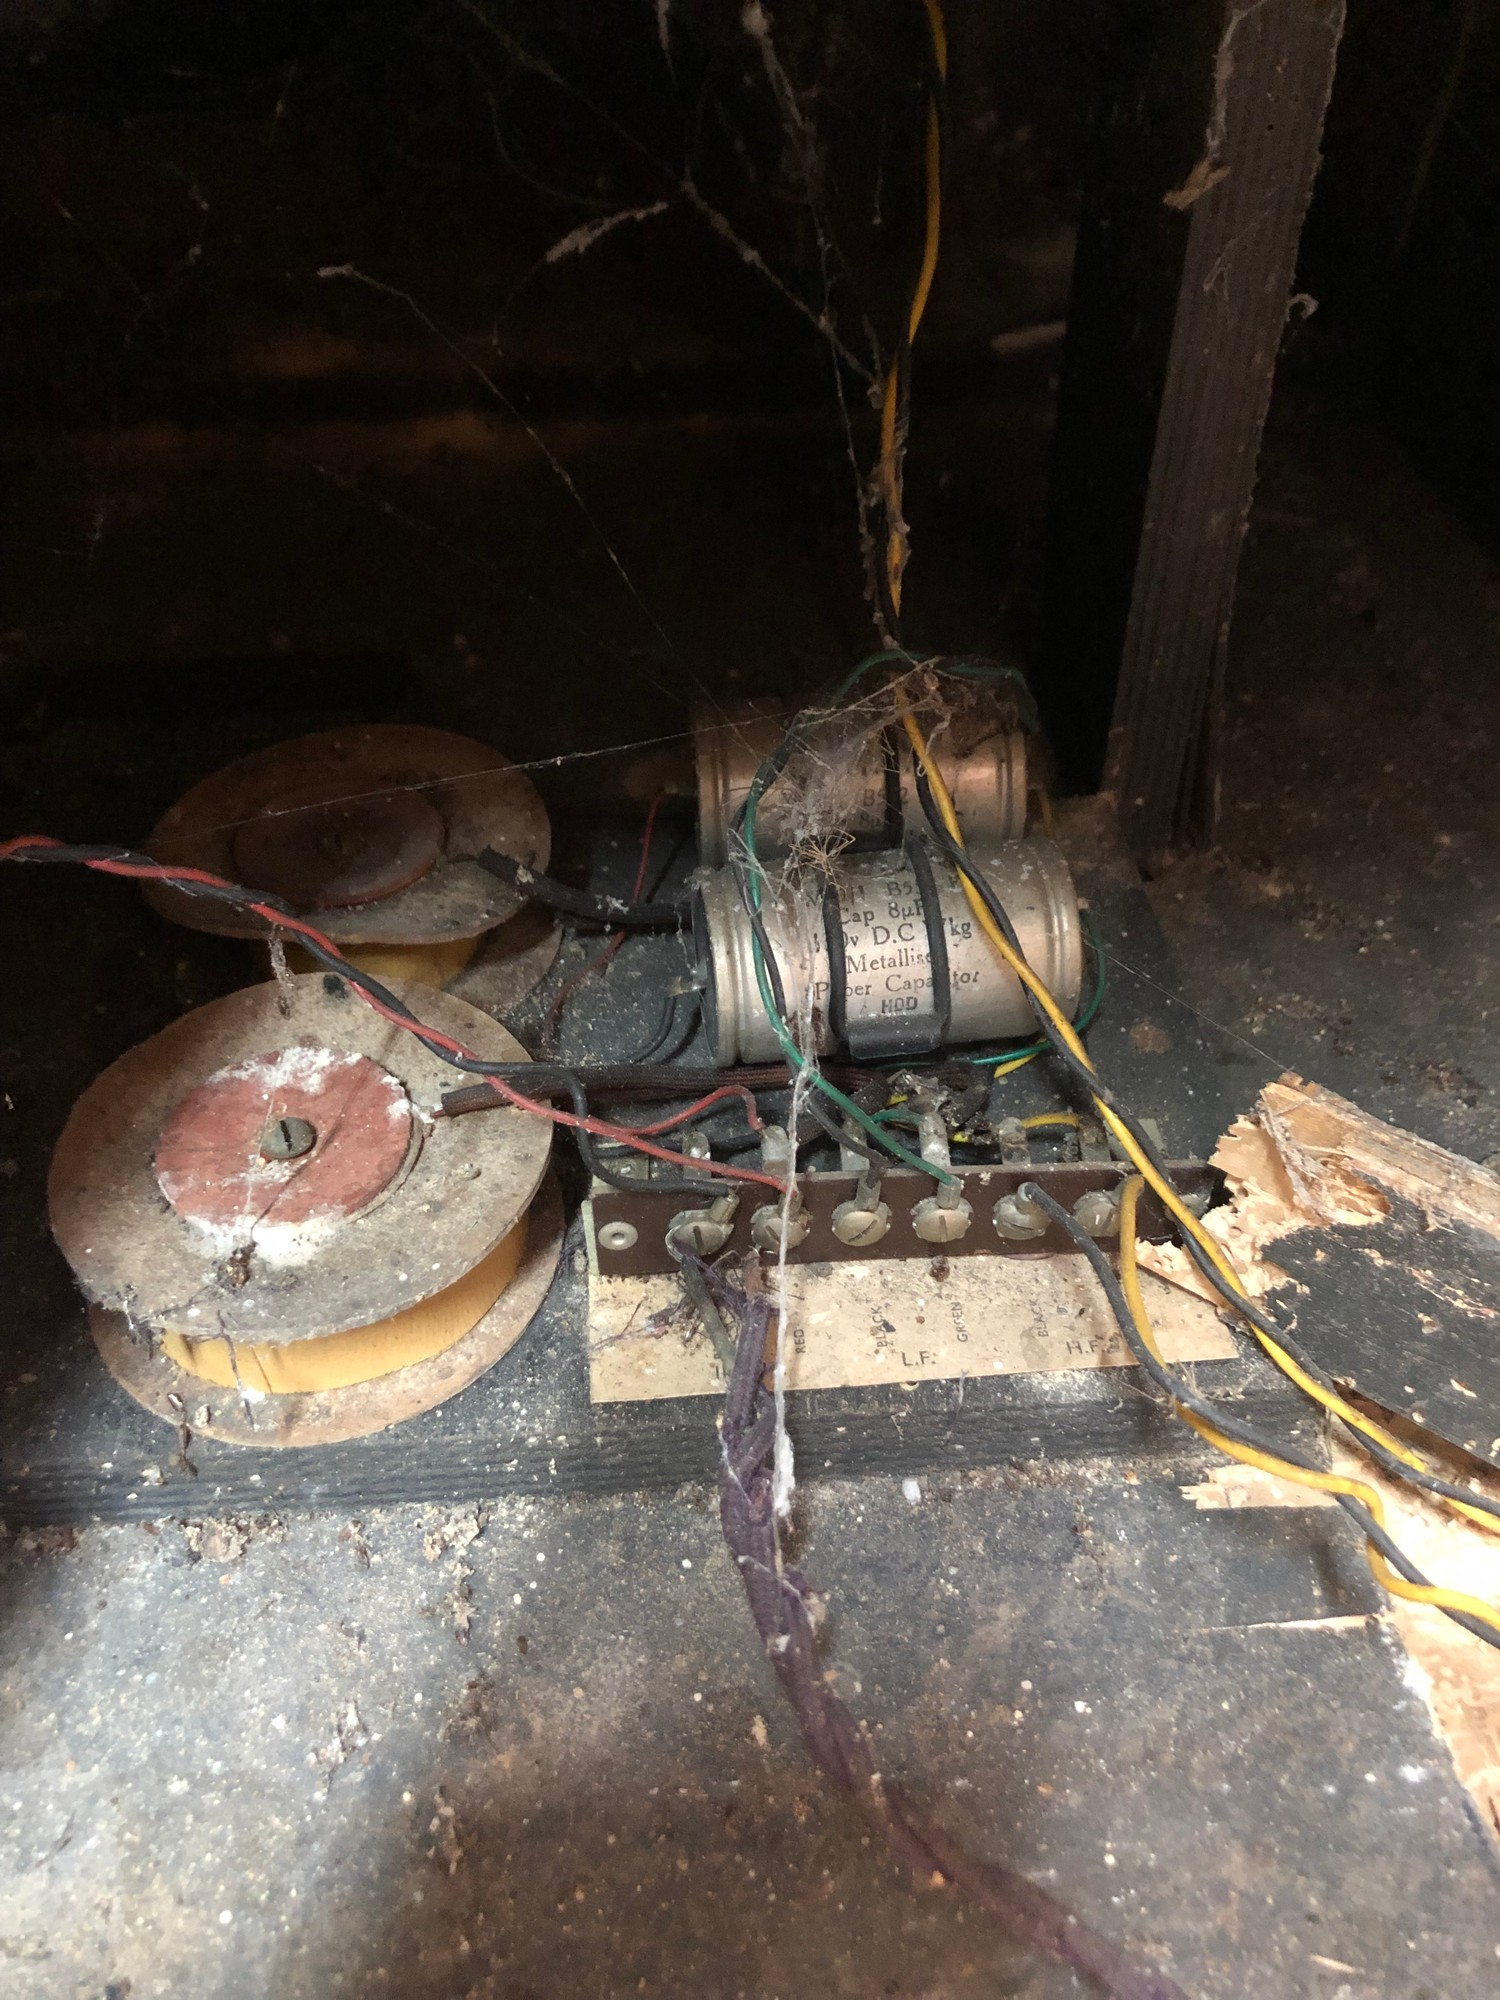 """Rare 1950s Bal-AMi 200 Jukebox in """"Barn Find"""" condition and in need of complete restoration, - Image 11 of 27"""